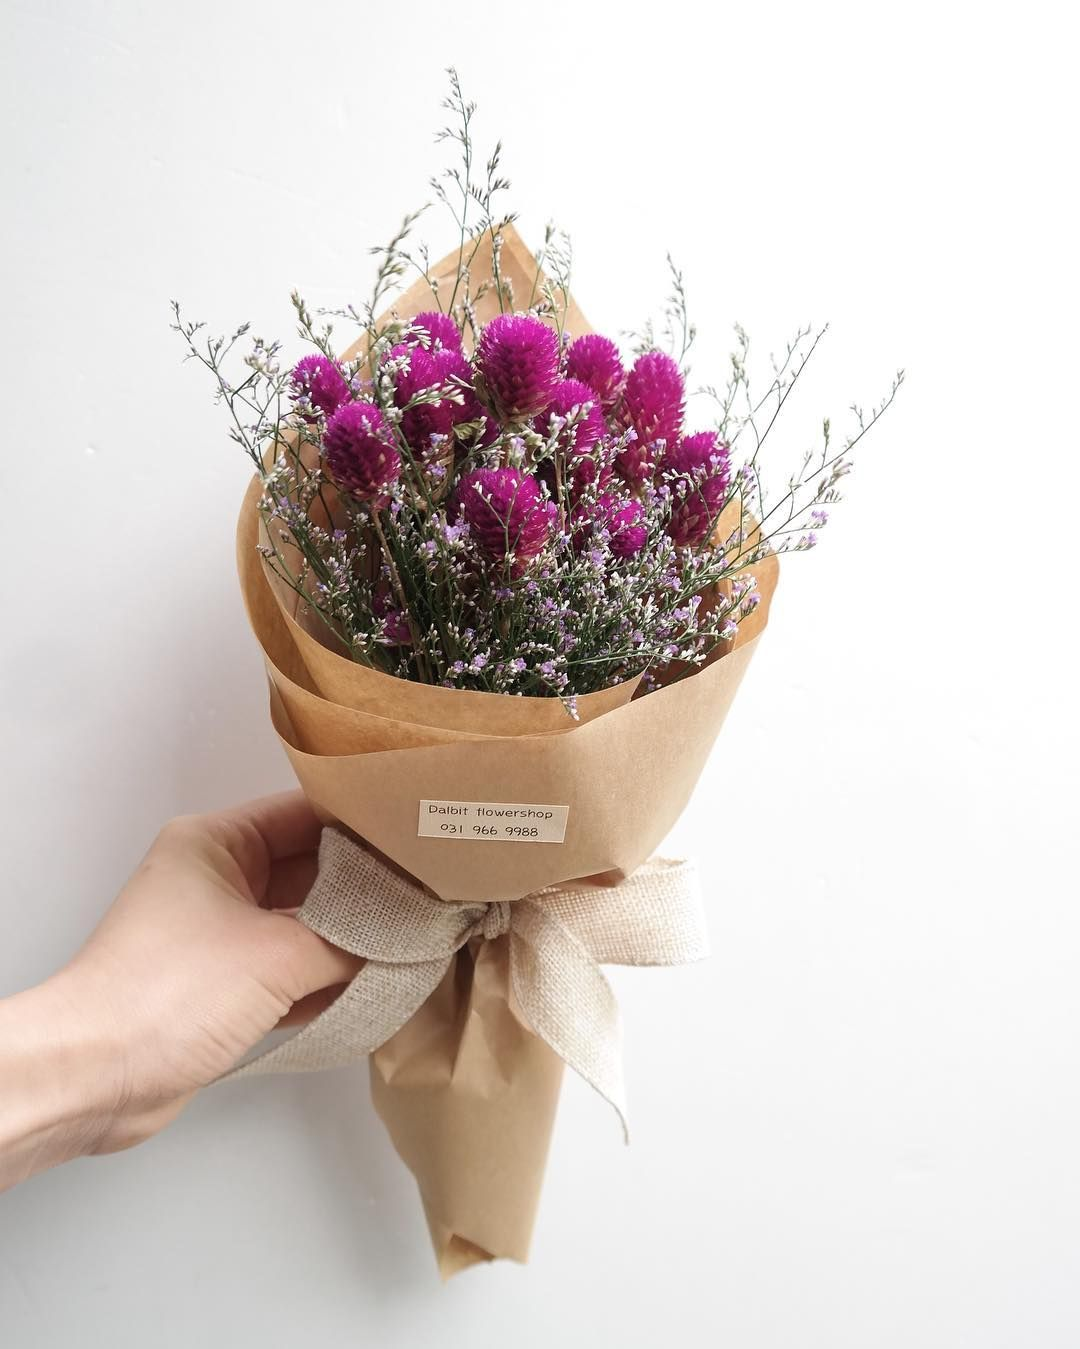 Pin by on dry flowers pinterest flowers flower and floral growing flowers dried flowers flower diy flower bouquets hand bouquet flower boxes flower shops pretty flowers florists izmirmasajfo Gallery